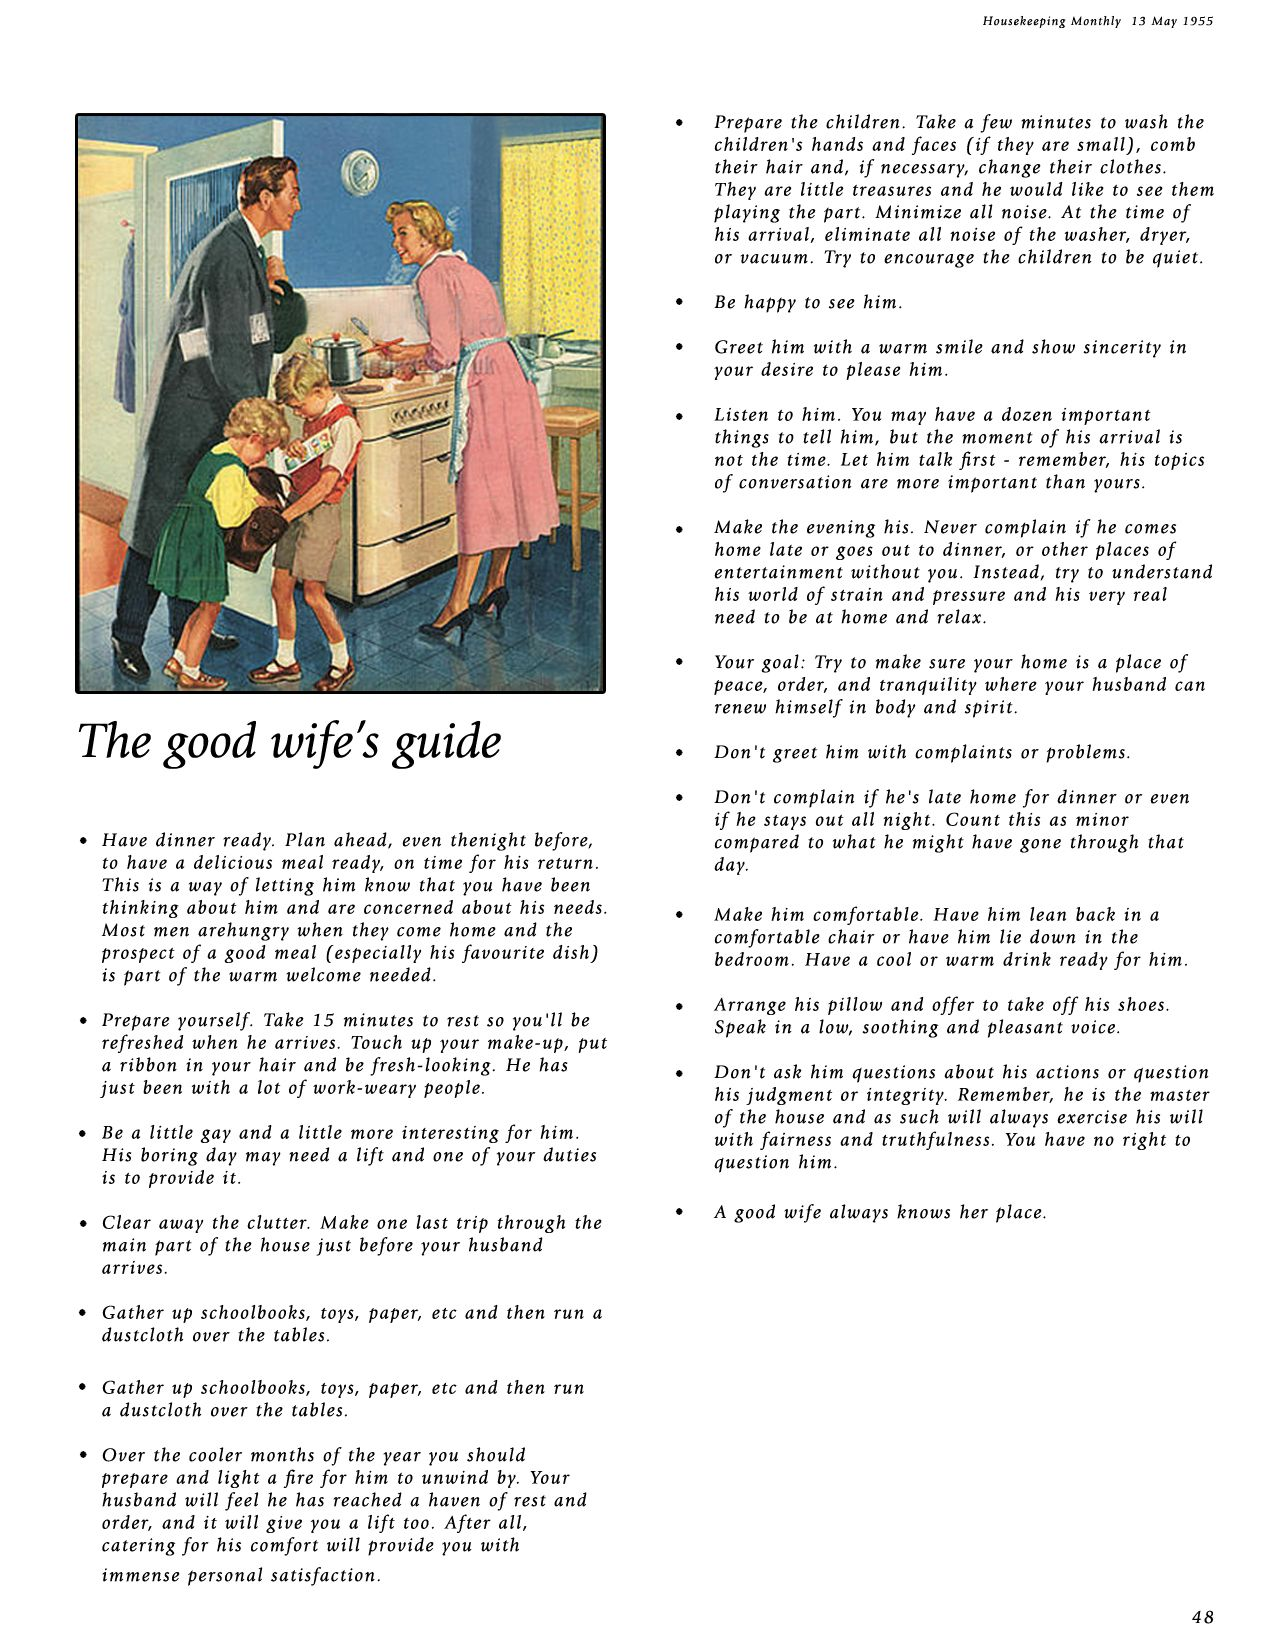 50s Guide To Being A Good Housewife